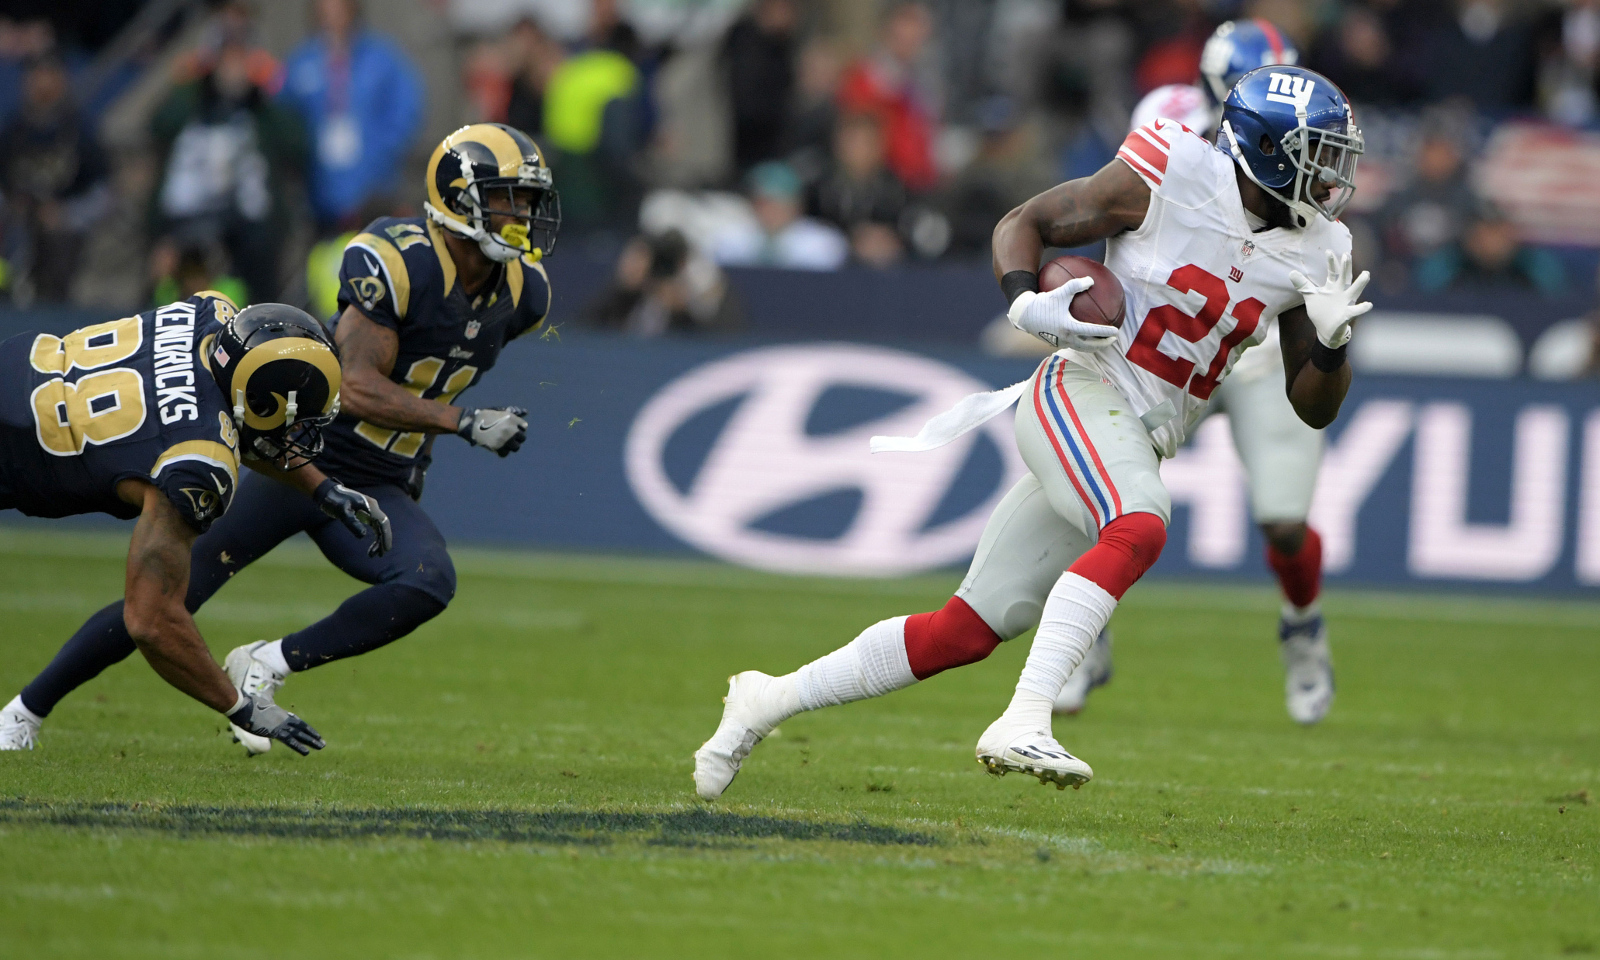 New York Giants safety Landon Collins wins back to back NFC